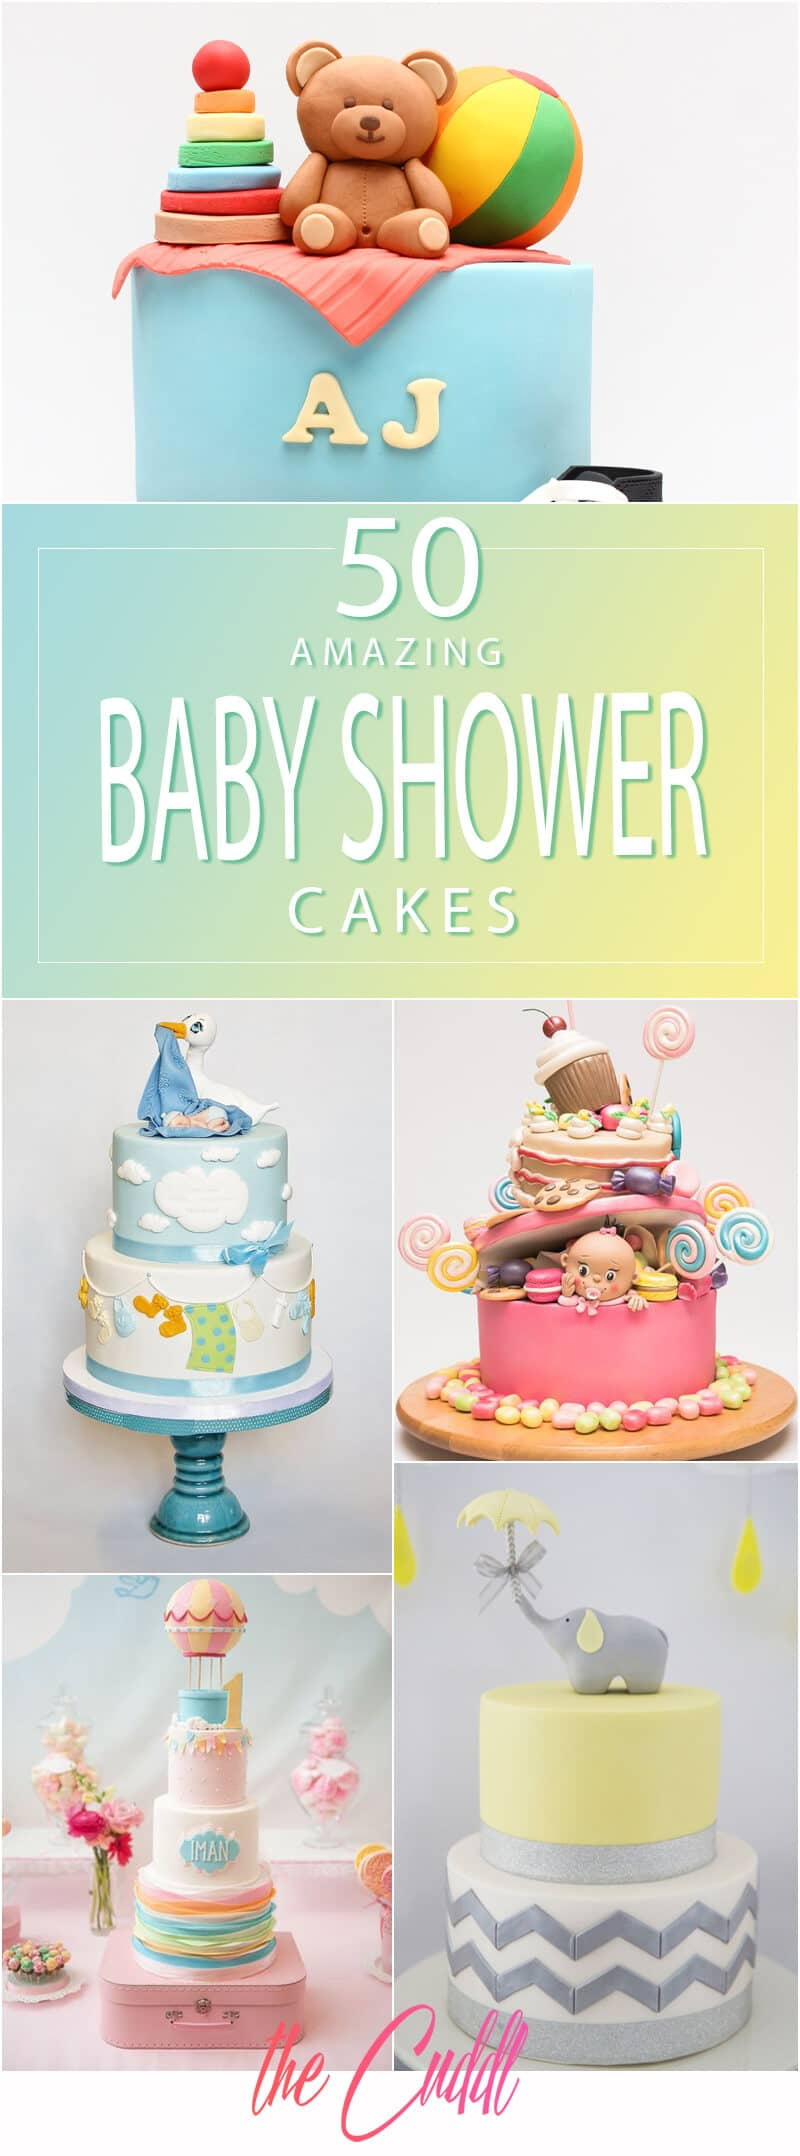 50 Amazing Baby Shower Cake Ideas That Will Inspire You In 2020